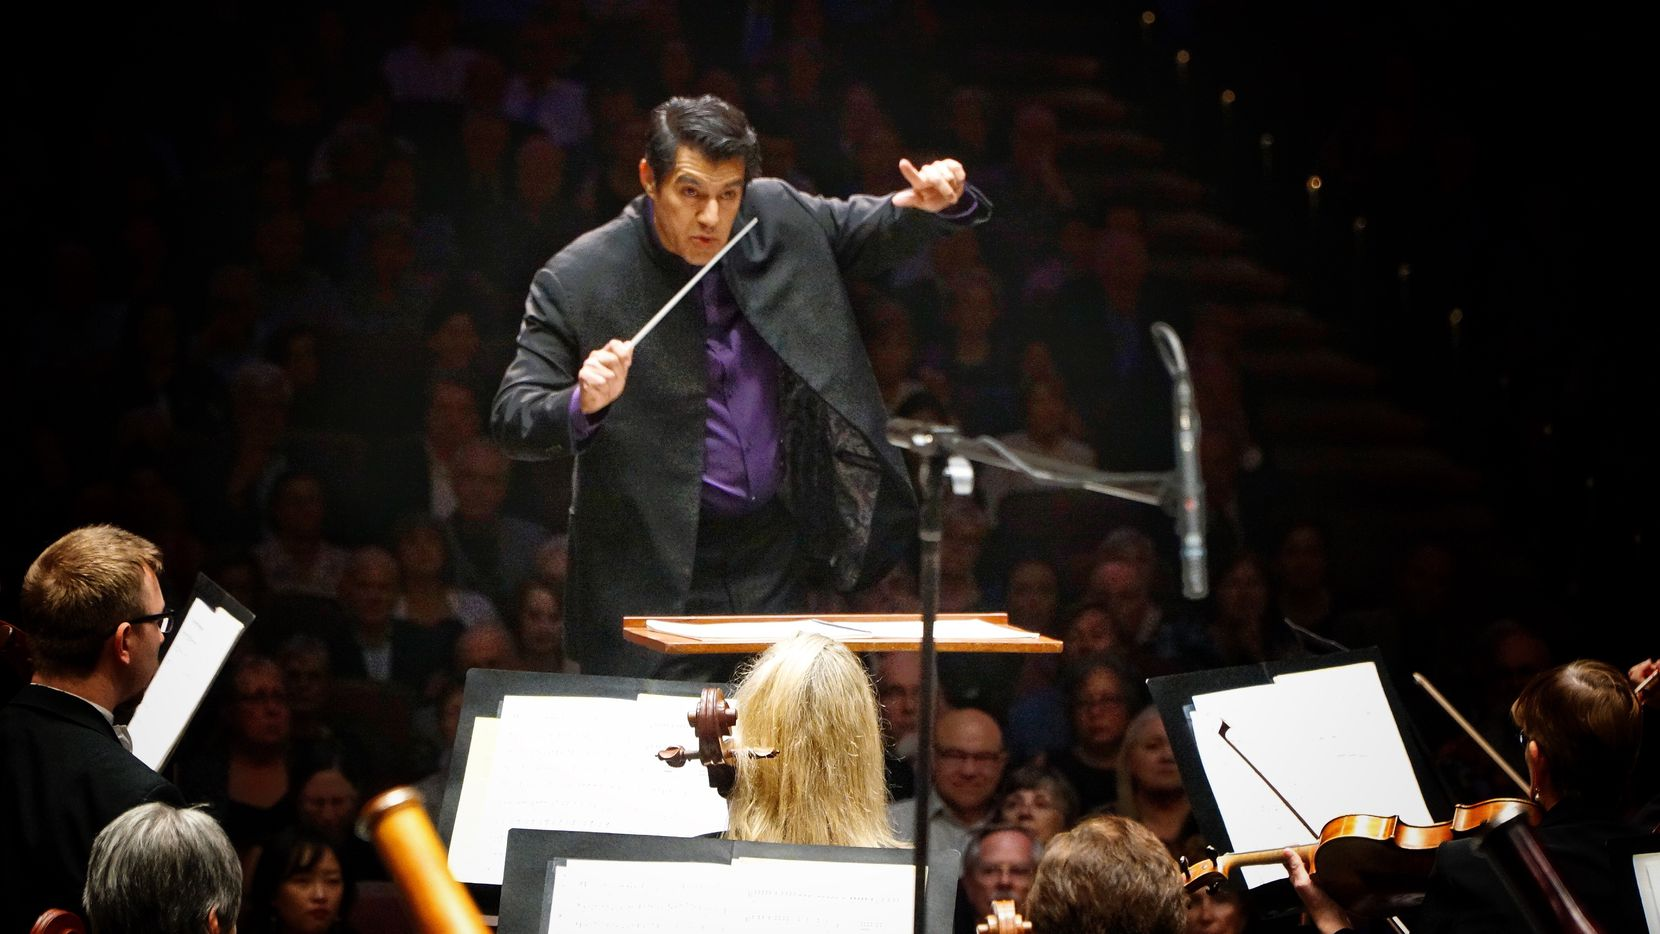 Miguel Harth-Bedoya directs the Fort Worth Symphony Orchestra on opening night of the 2019-20 season at Bass Performance Hall in Fort Worth on Sept. 13, 2019.